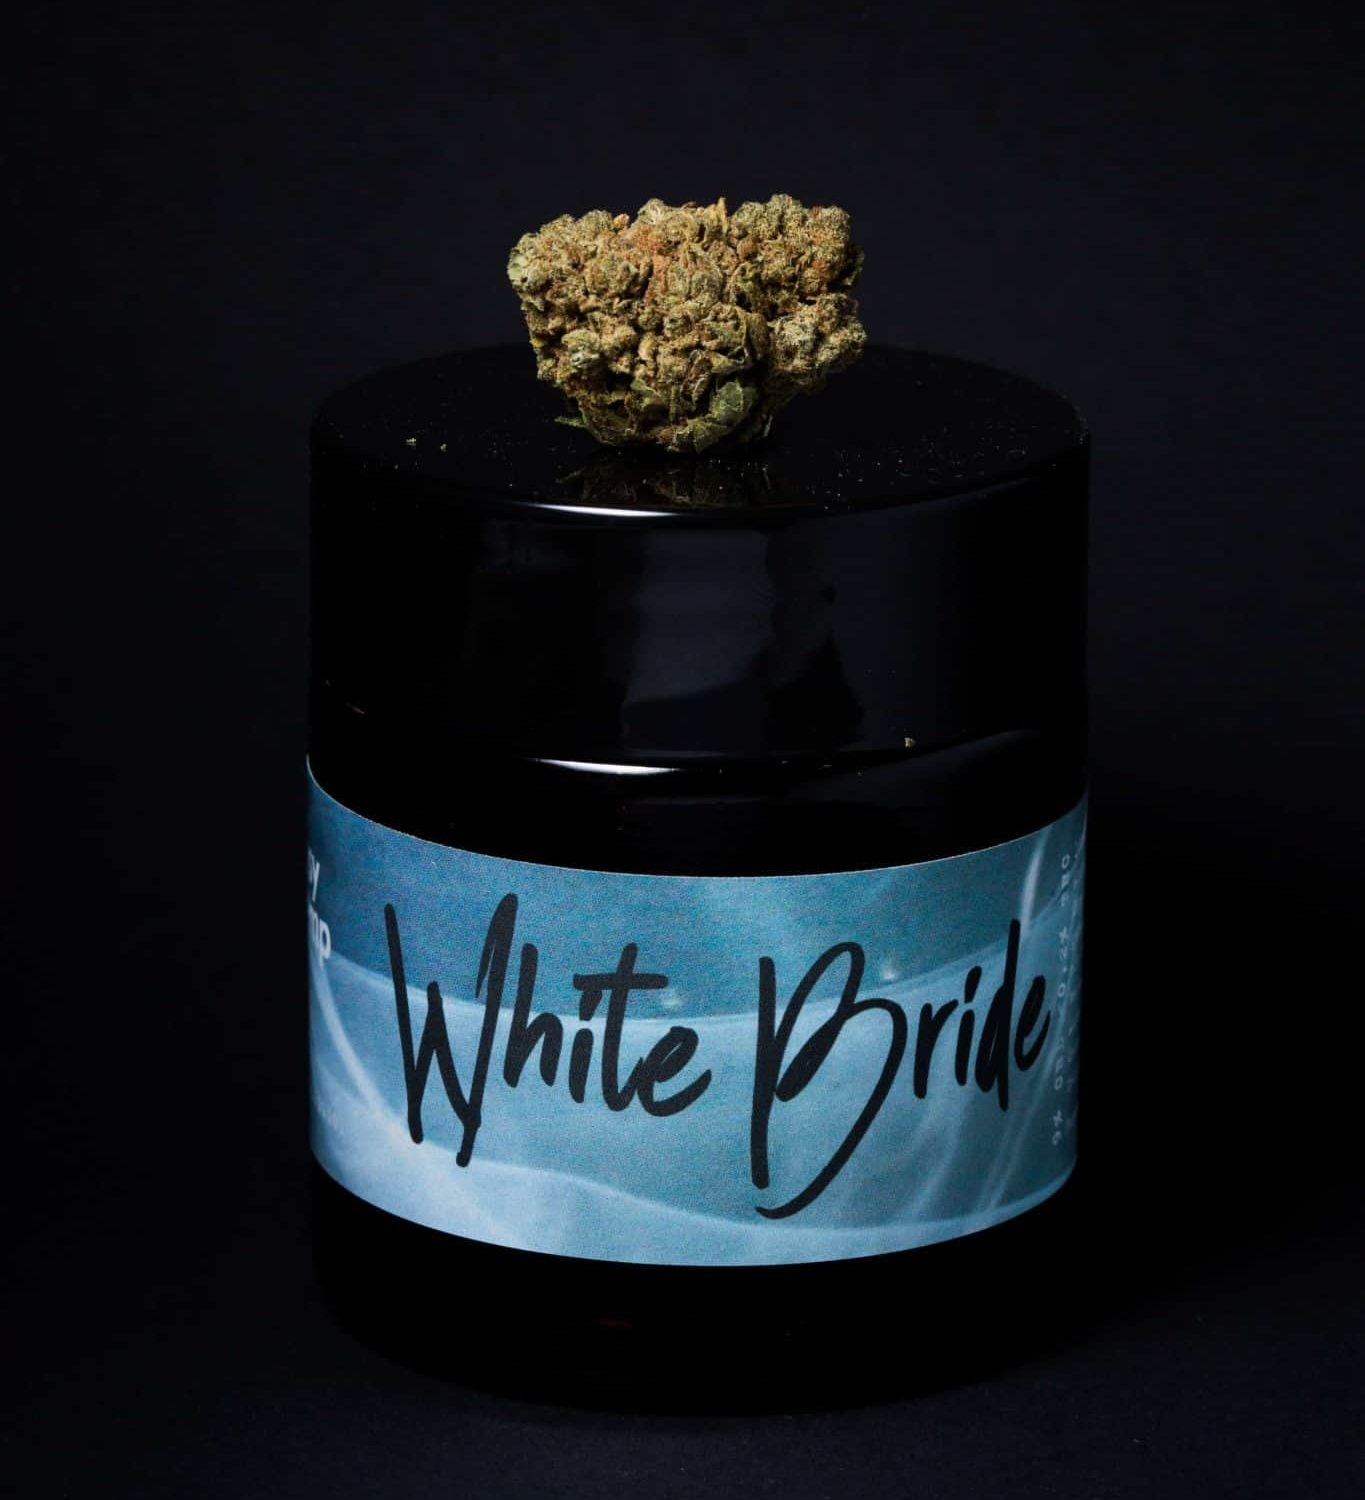 Easy Hemp — White Bride — 9% CBD